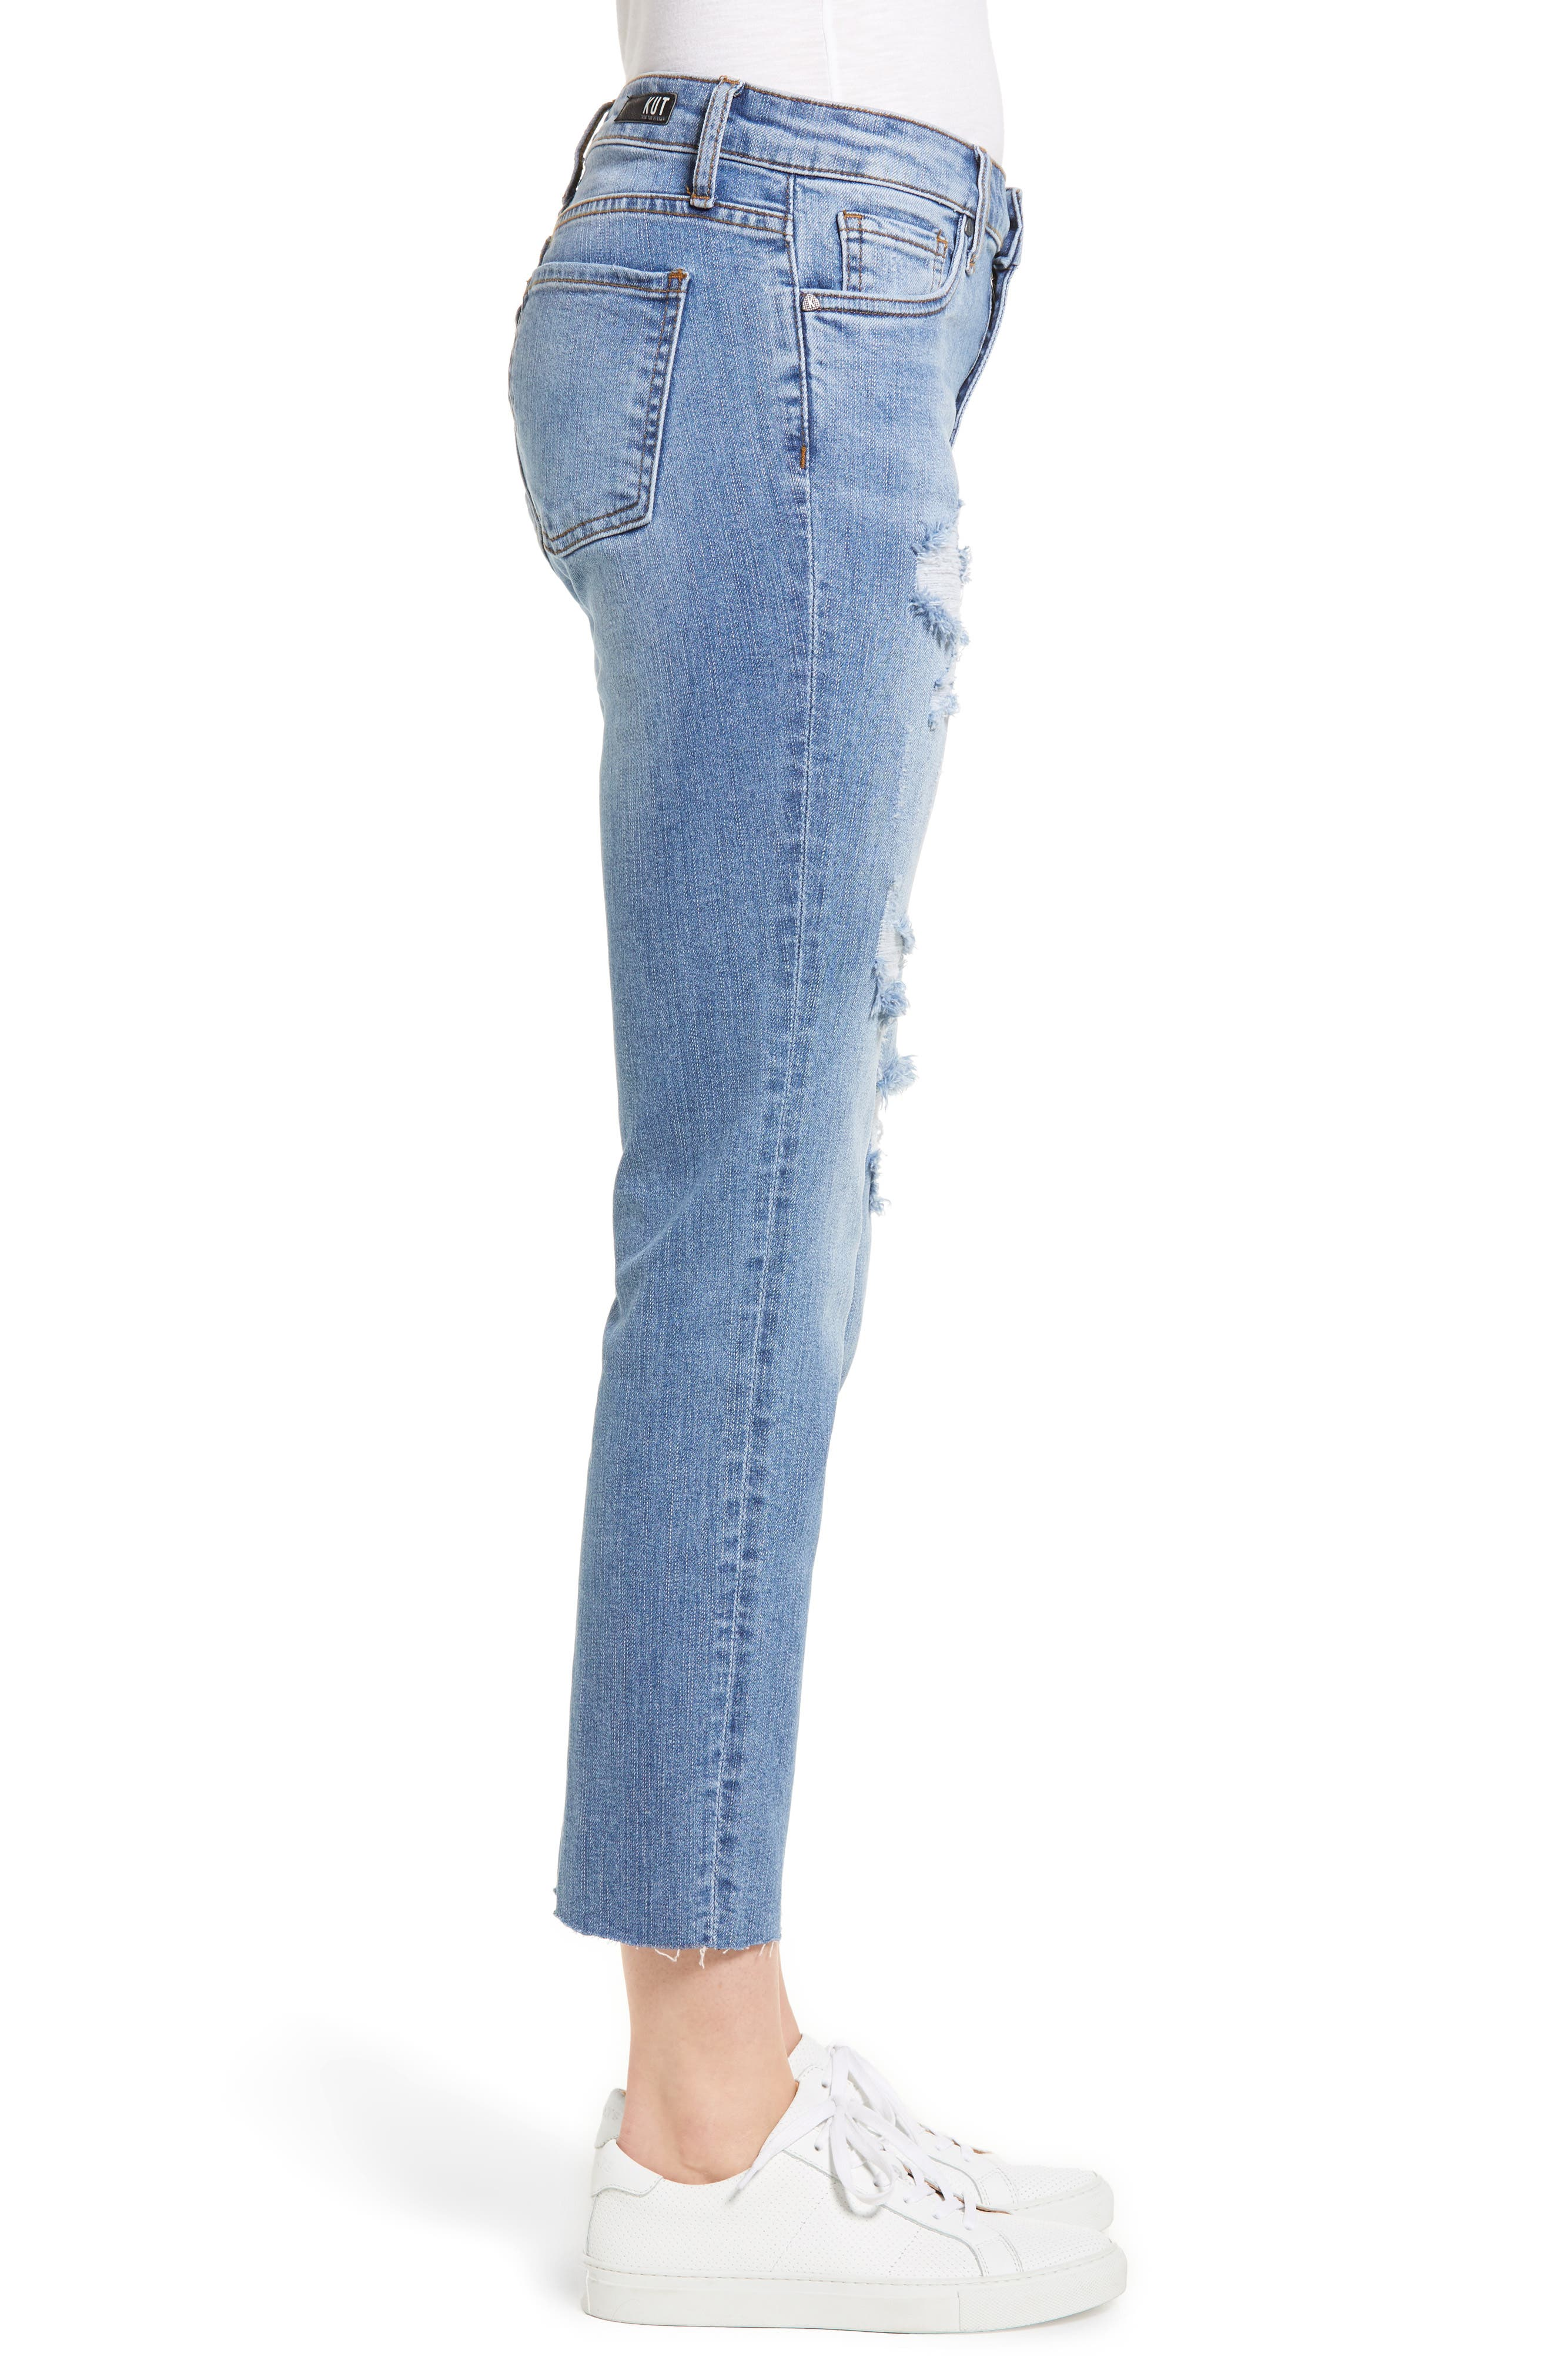 Reese Ripped Raw Edge Ankle Jeans,                             Alternate thumbnail 3, color,